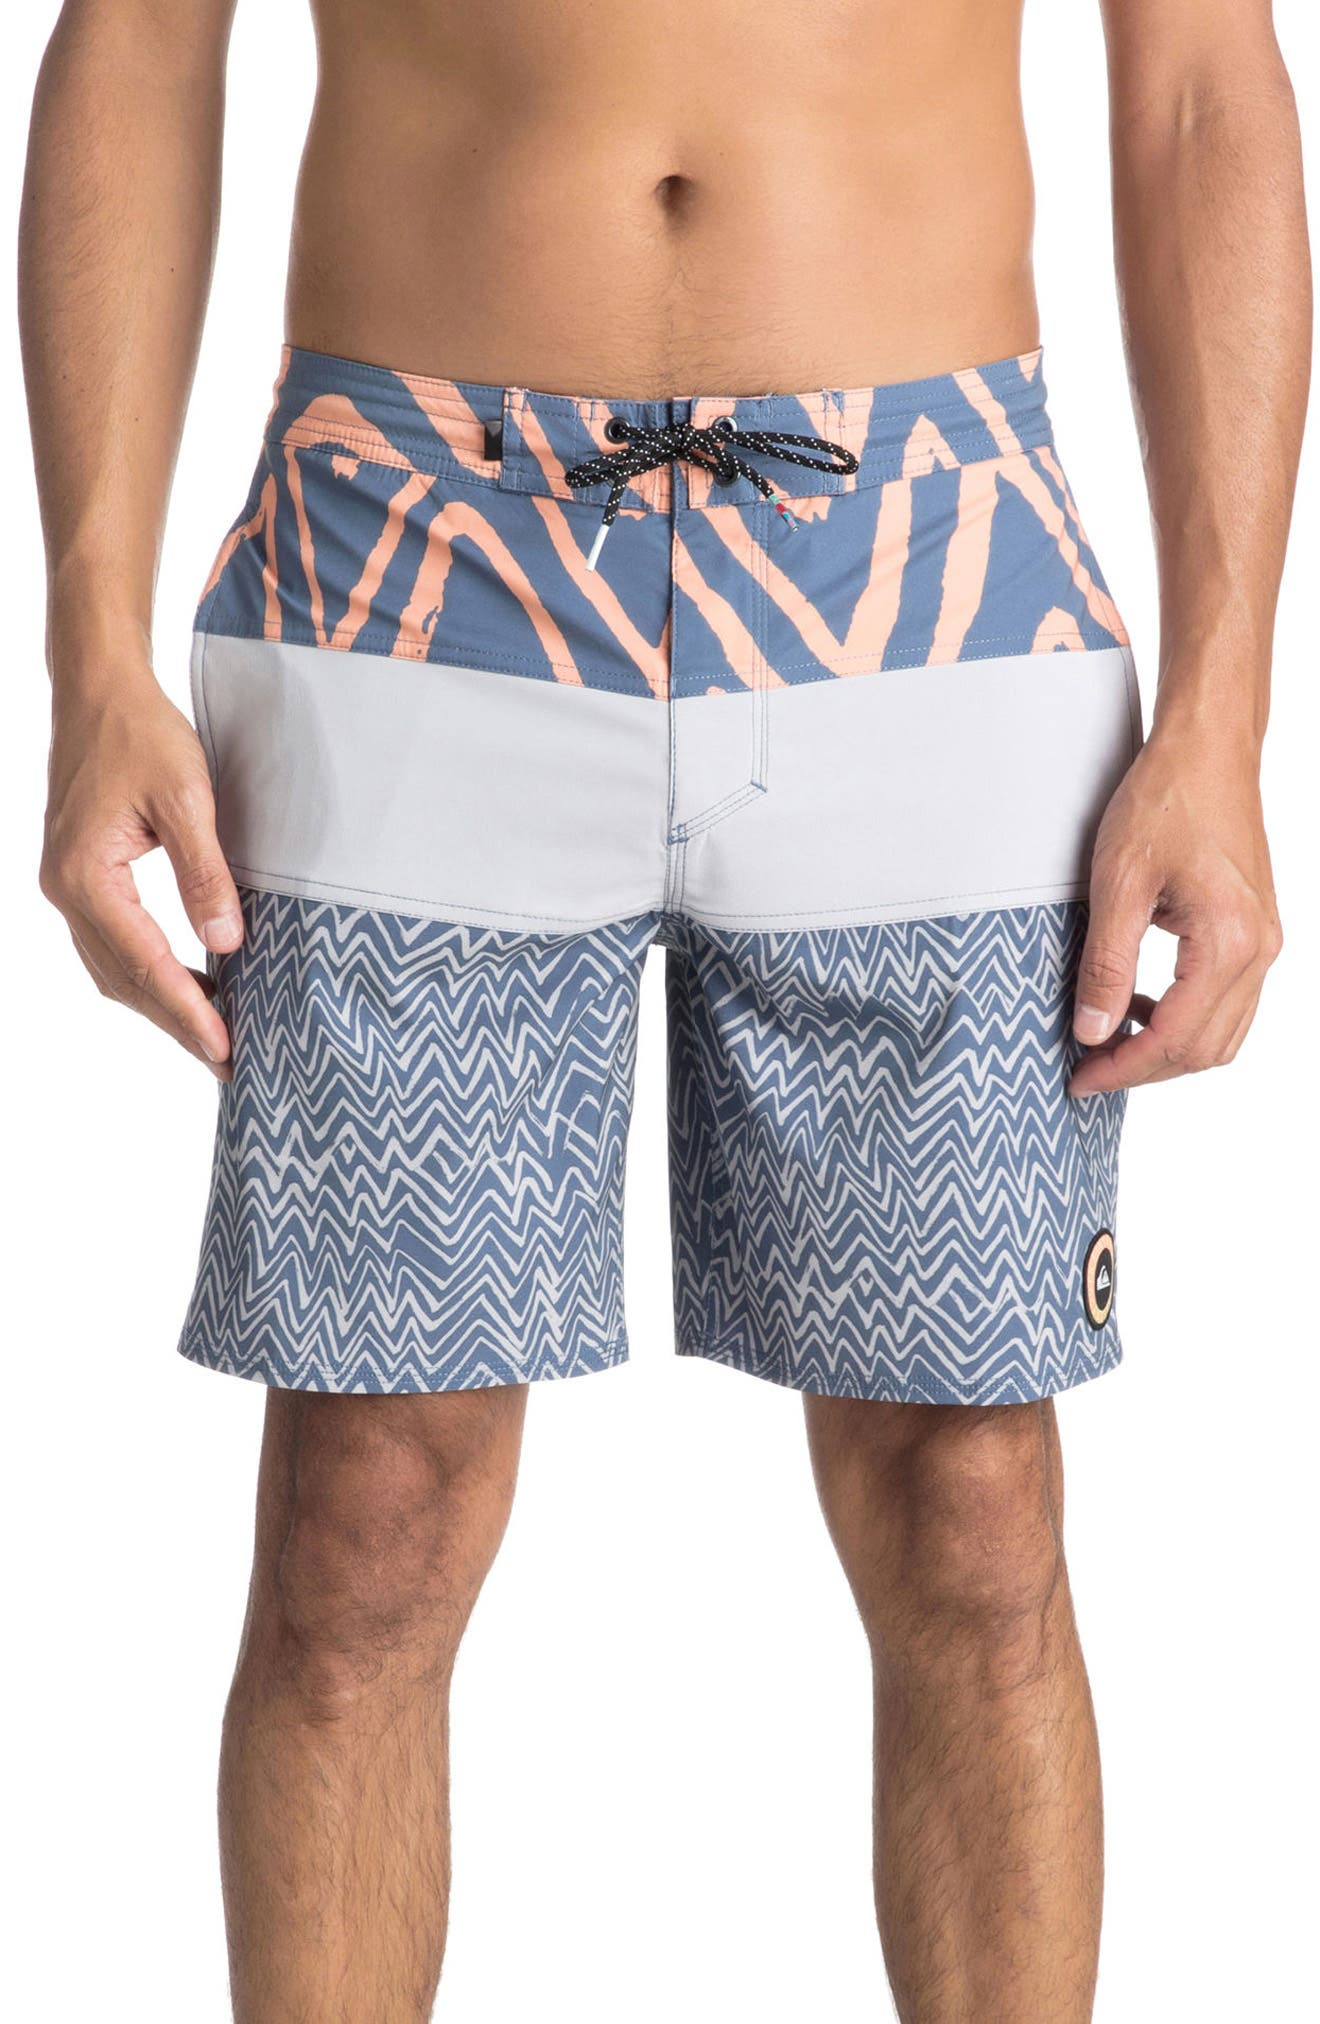 TechTonic Board Shorts,                         Main,                         color, Silver Sconce